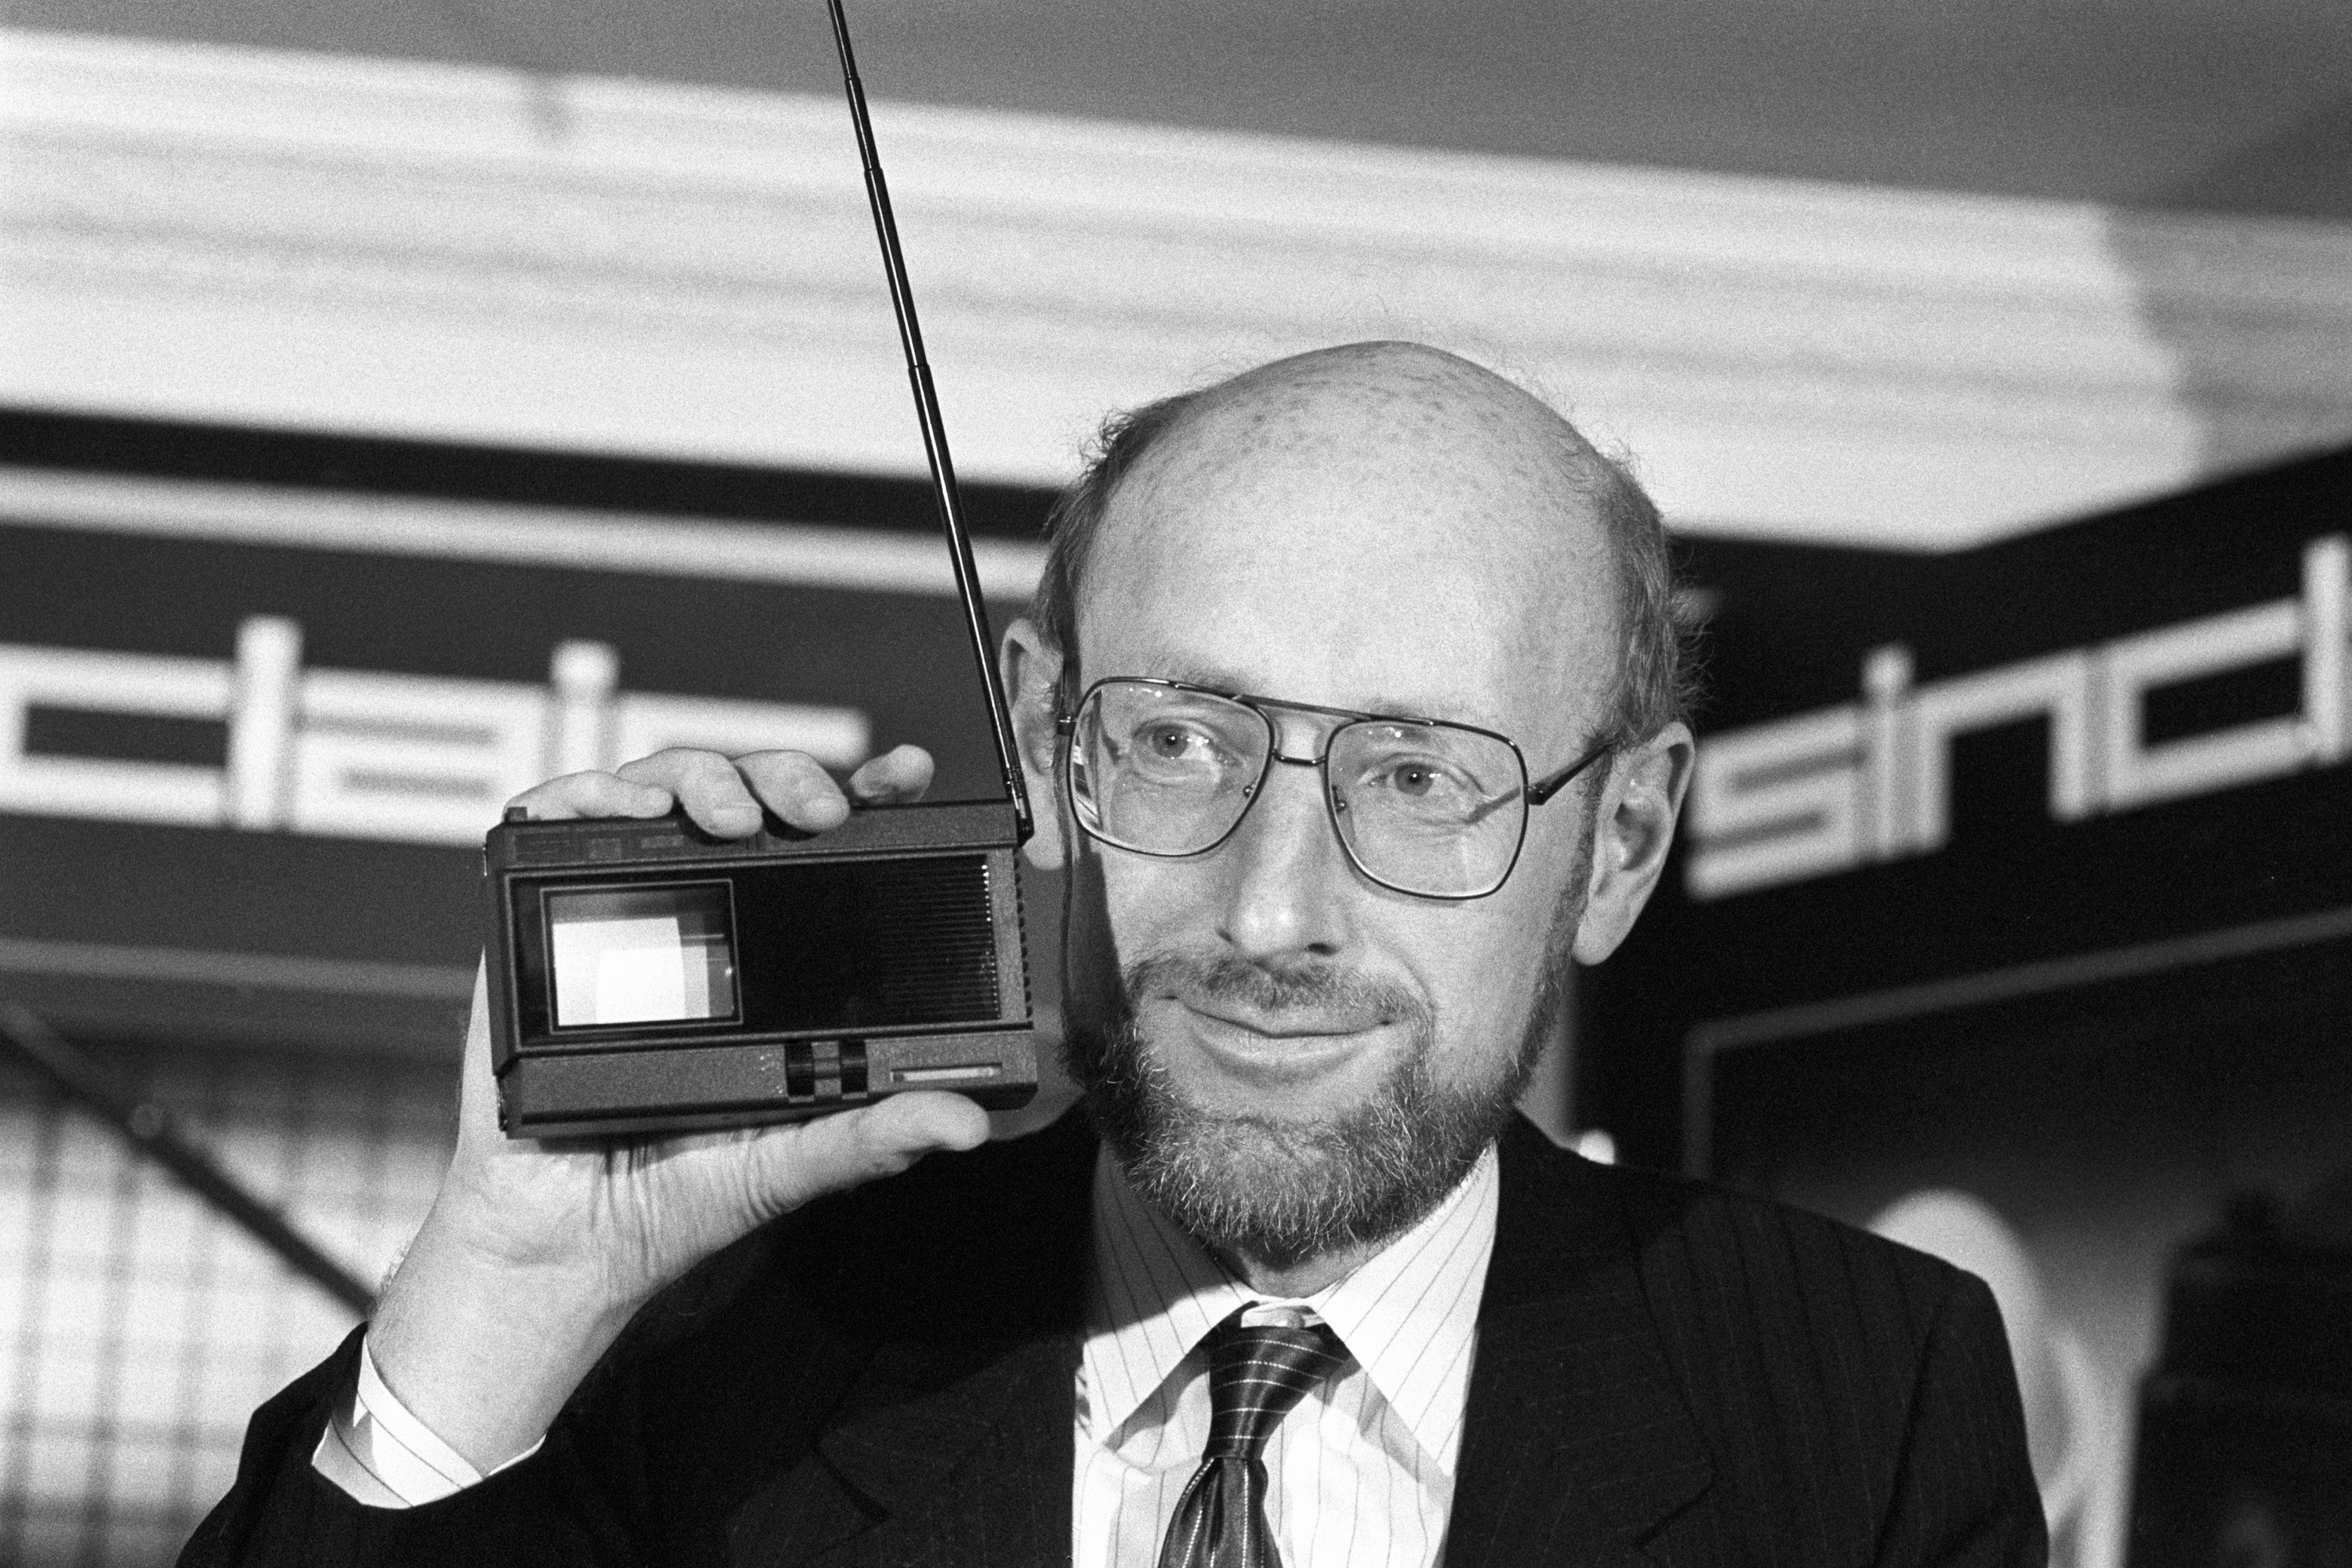 Clive Sinclair, founder and chairman of Sinclair Research, at the launch of the Sinclair 2-inch pocket television